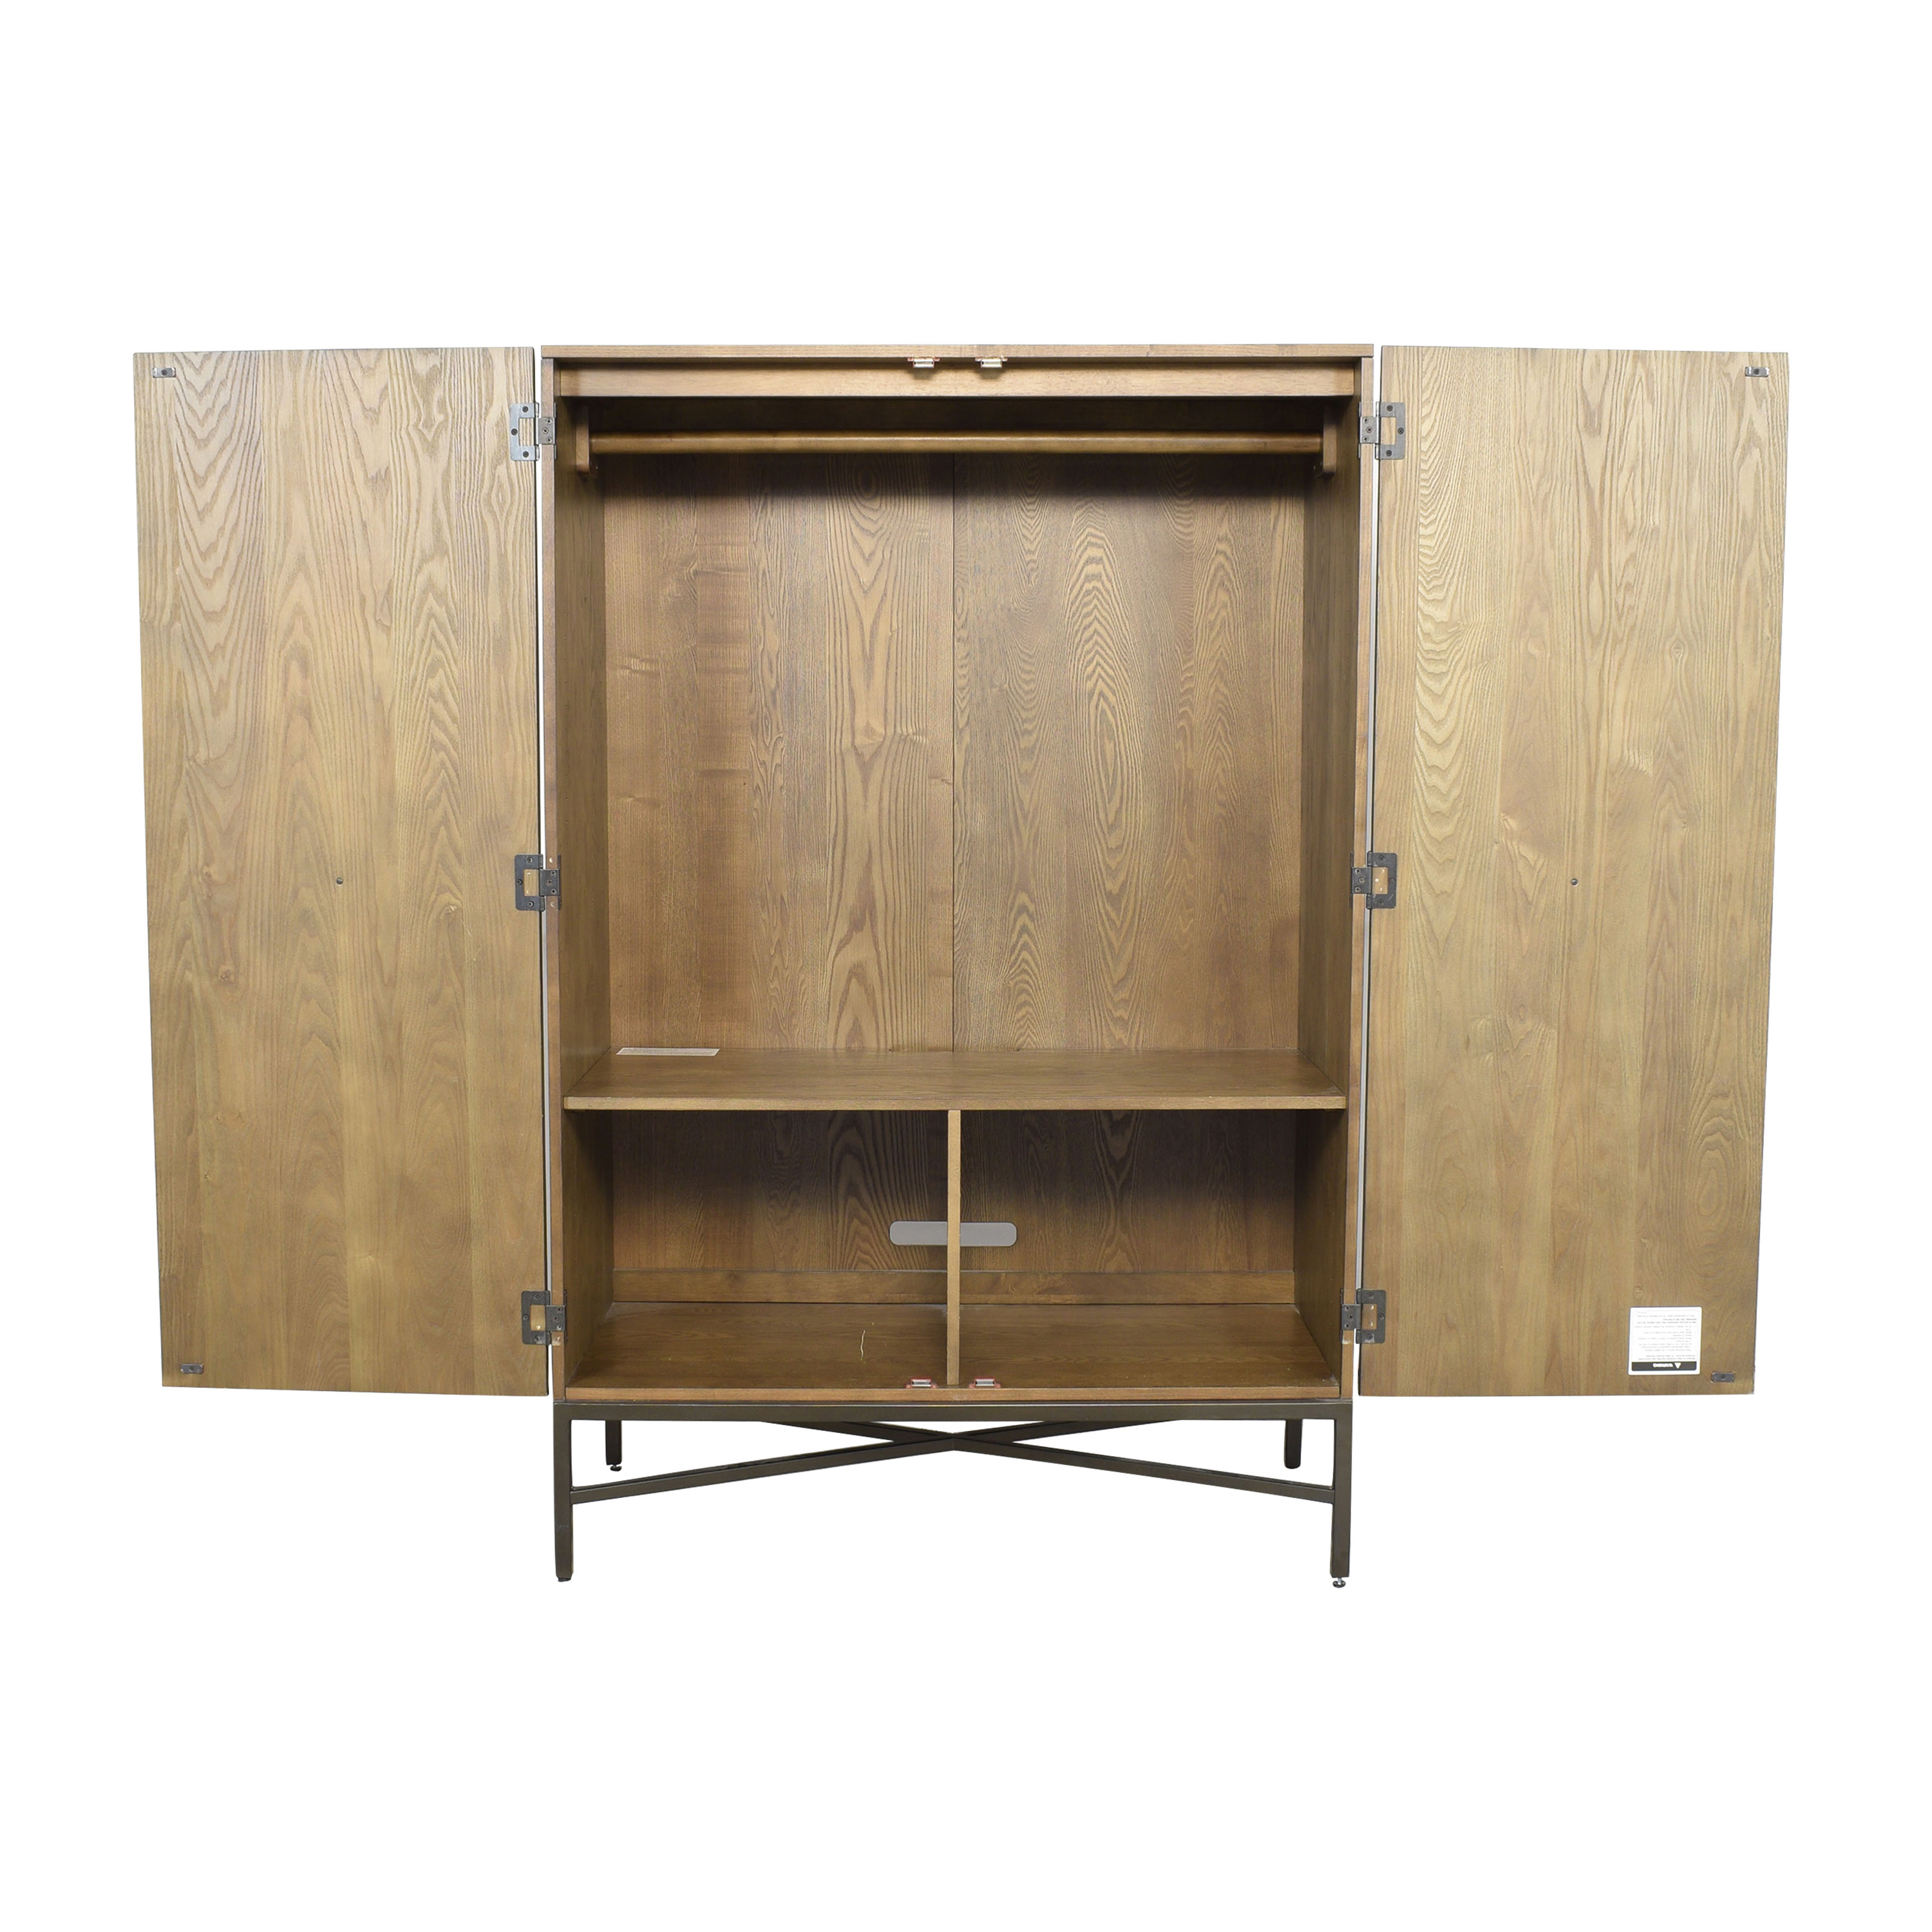 West Elm West Elm Paneled Armoire price